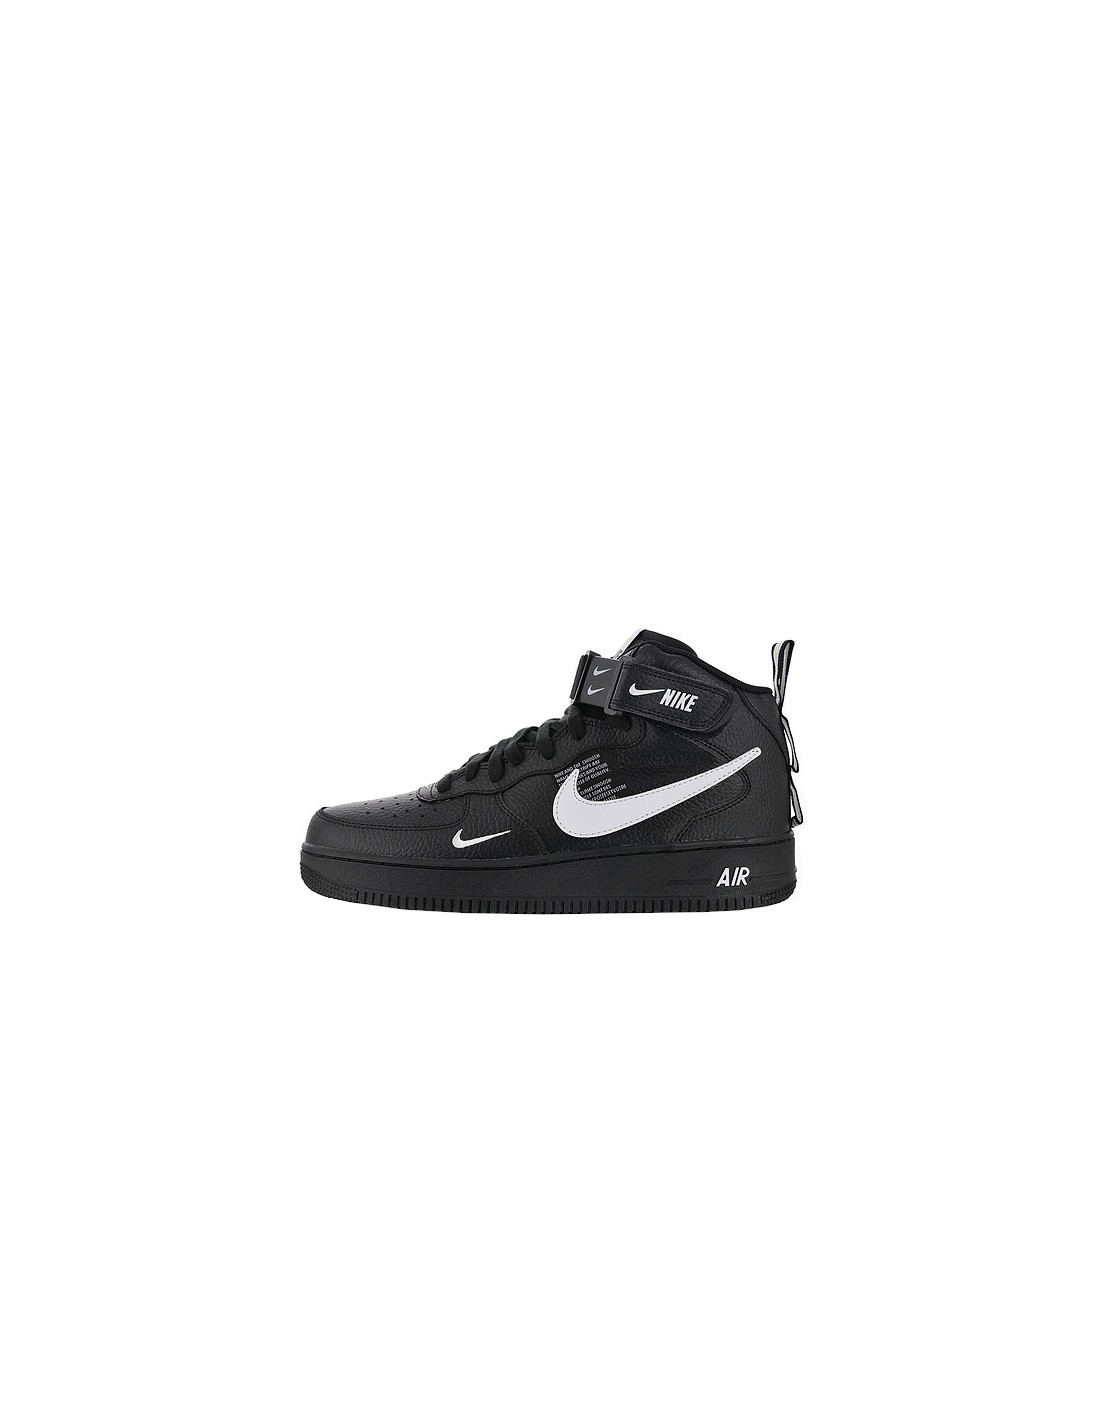 Nike Air Force 1 Mid '07 LV8 Utility Men's & Women's Shoe